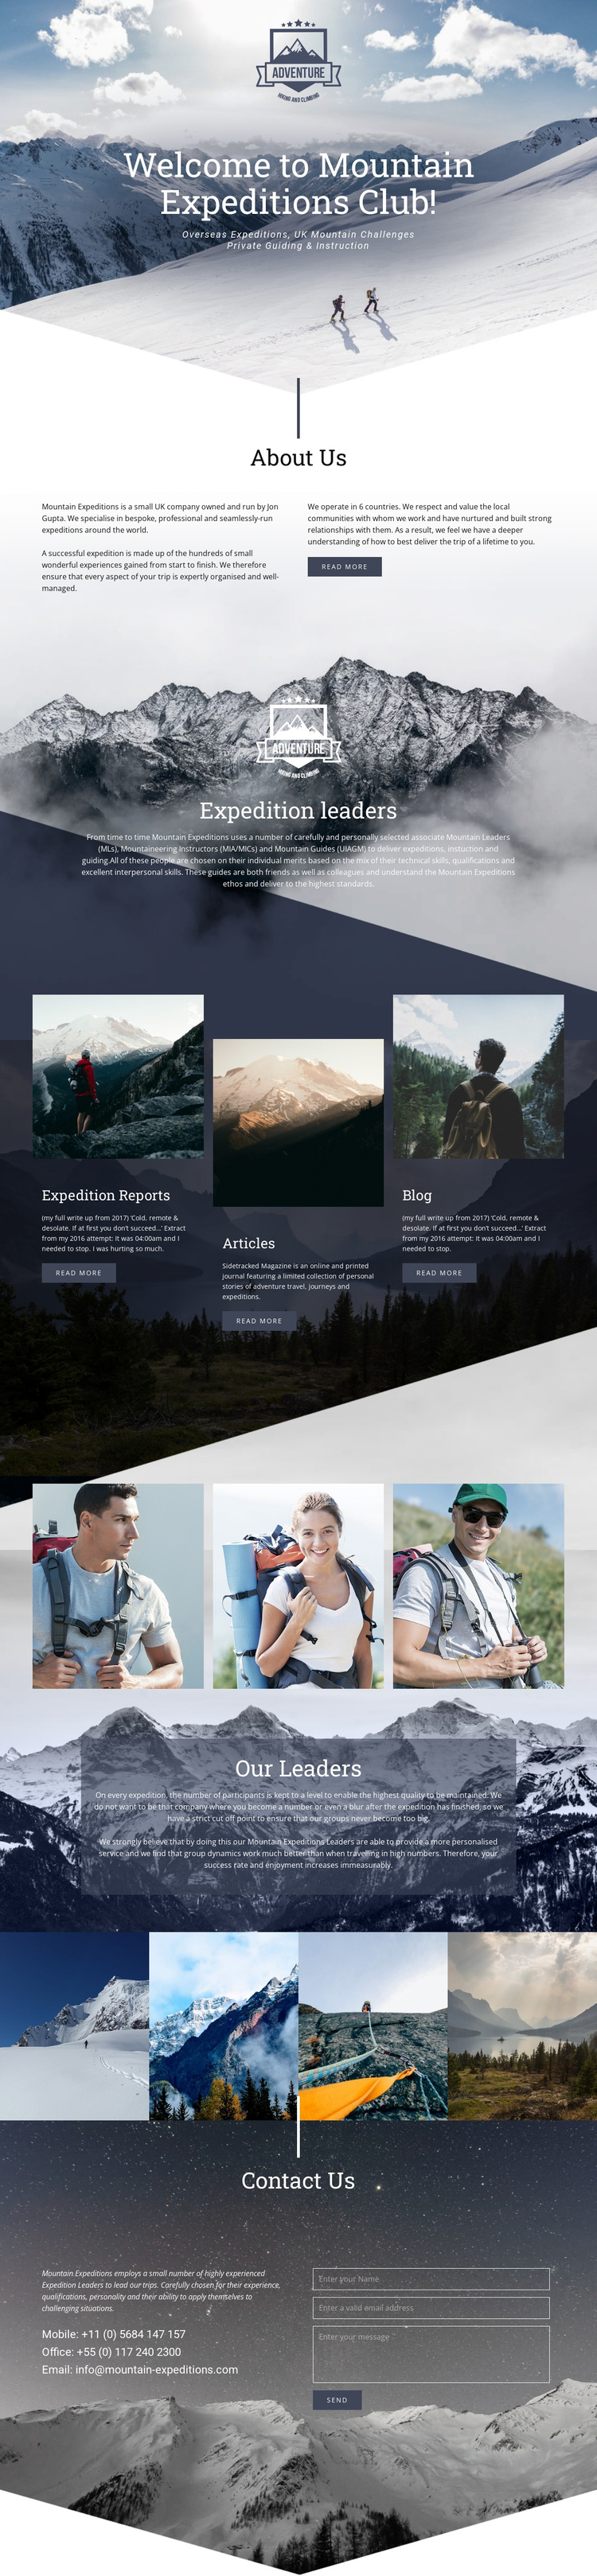 Extreme mountain expedition Website Builder Software